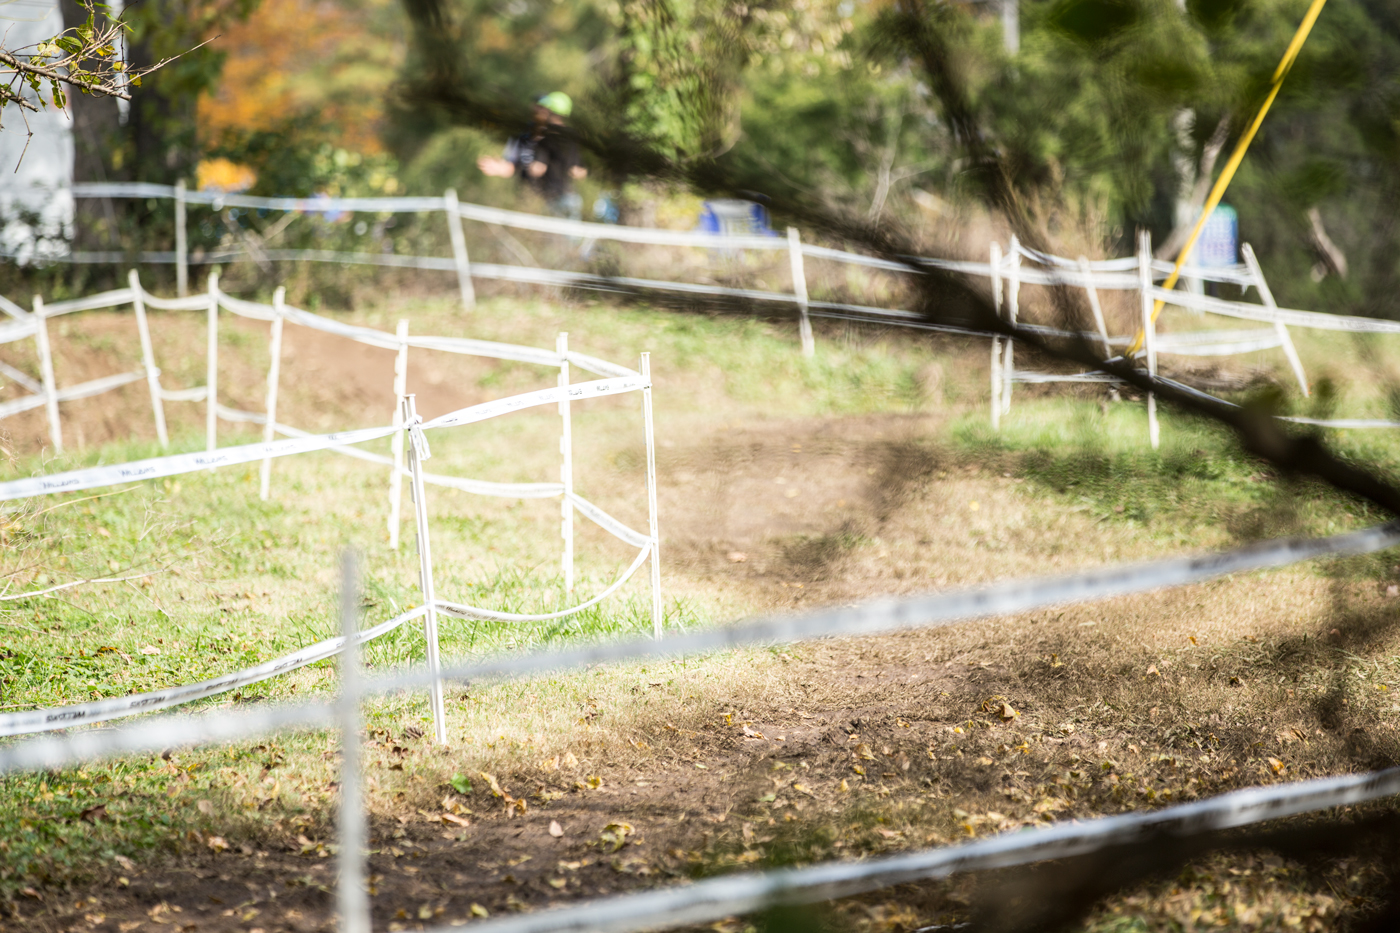 It may sound silly, but every time I go to a cyclocross event, I'm so happy and excited by the fact that some people took the time to create and map a course for us to ride on. I know that's the whole point of signing up for a race, but man does it make me feel lucky and giddy to get on it and practice!